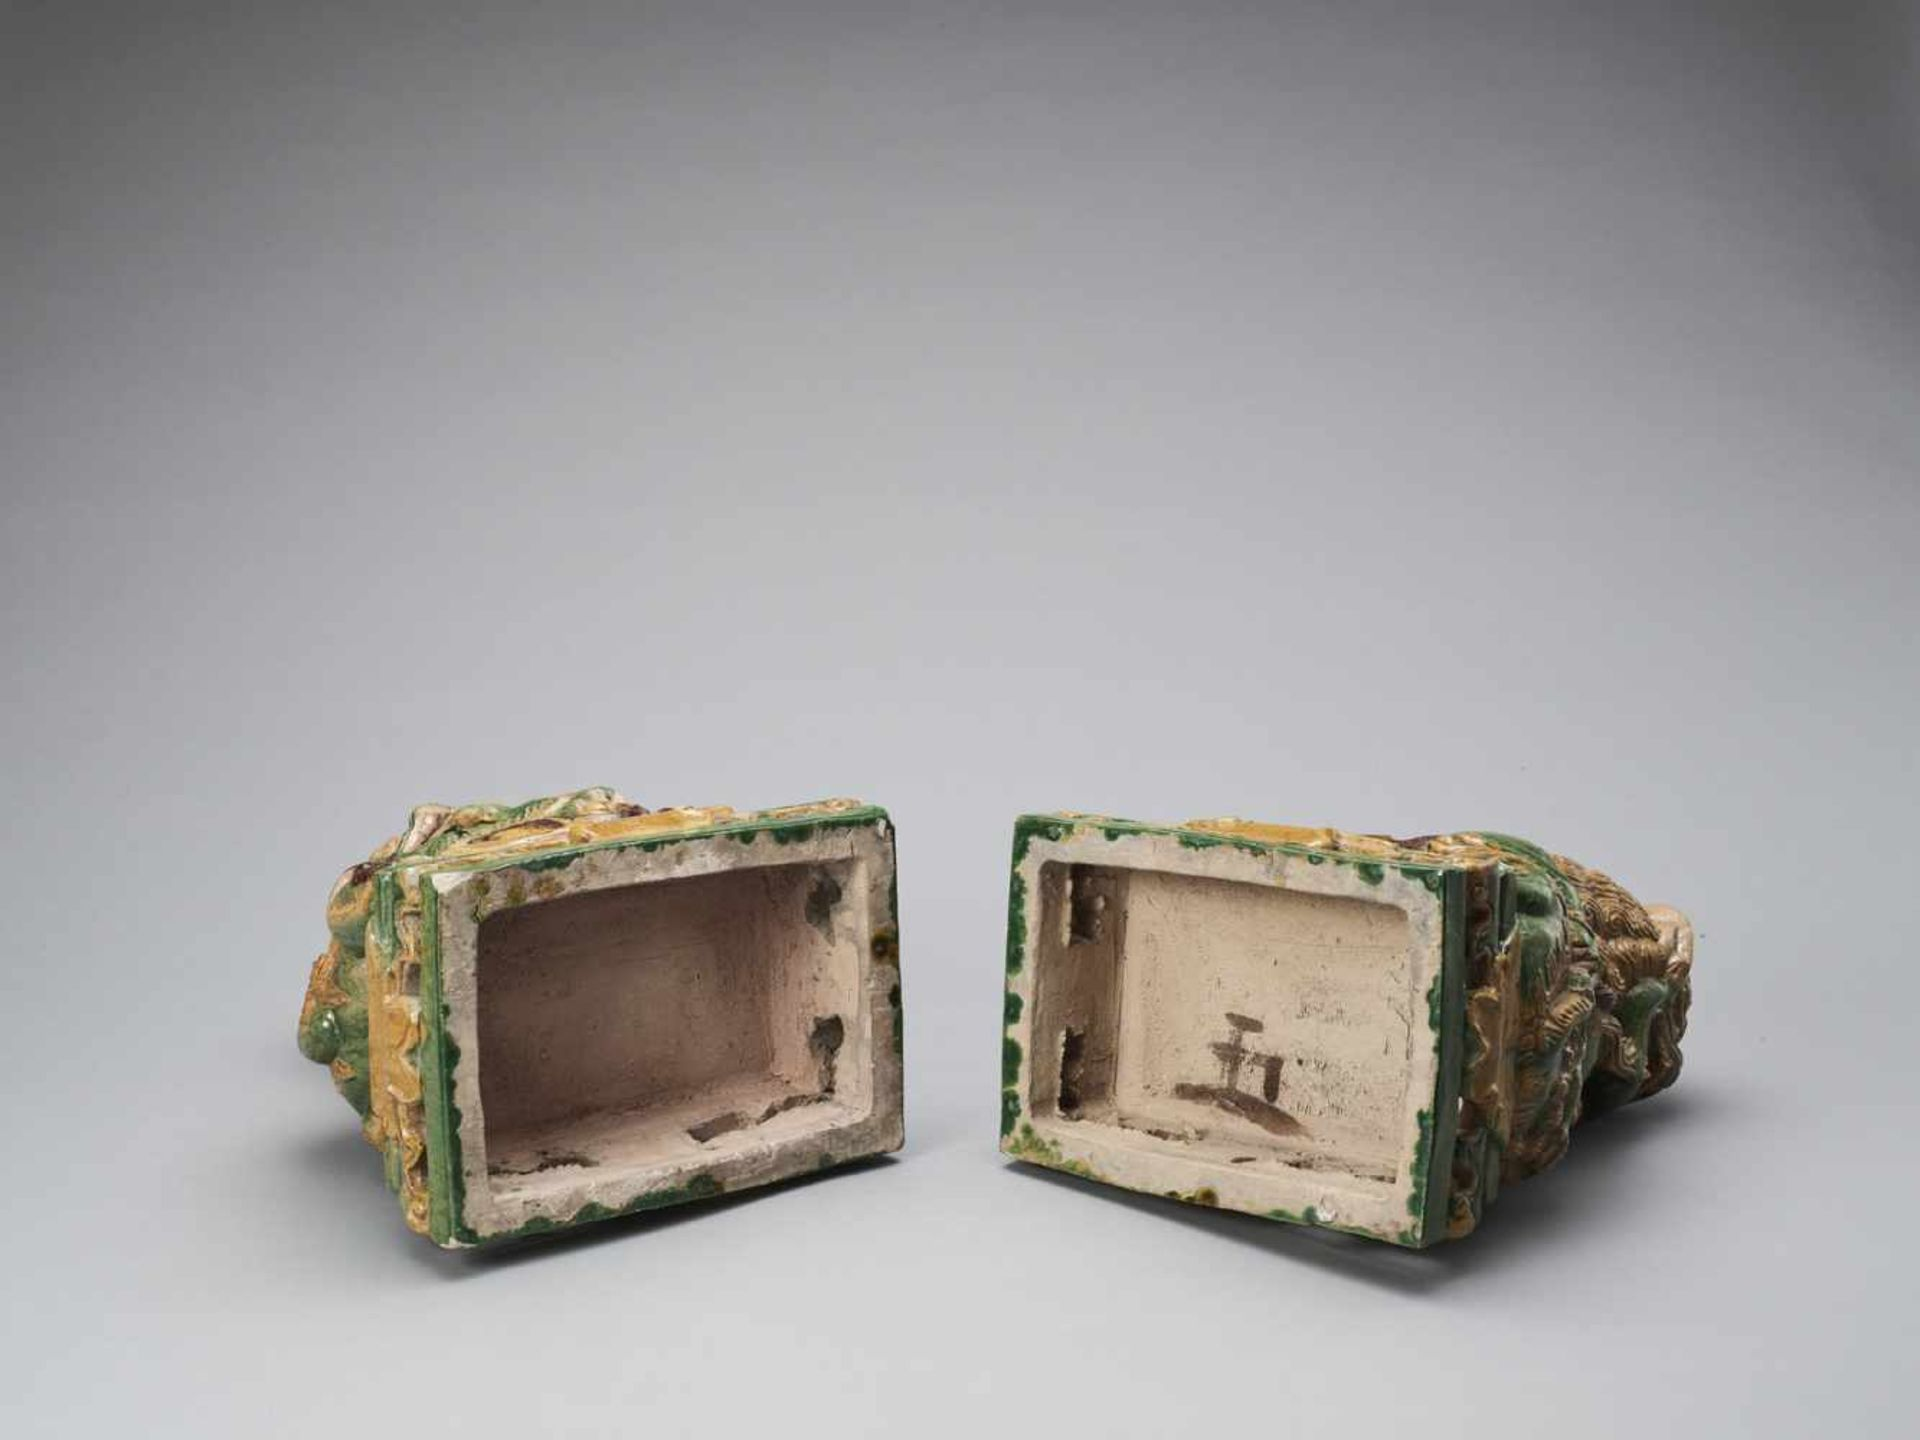 Los 402 - A PAIR OF RETICULATED SANCAI GLAZED POTTERY BUDDHIST LIONS, LATE MING TO EARLIER QING